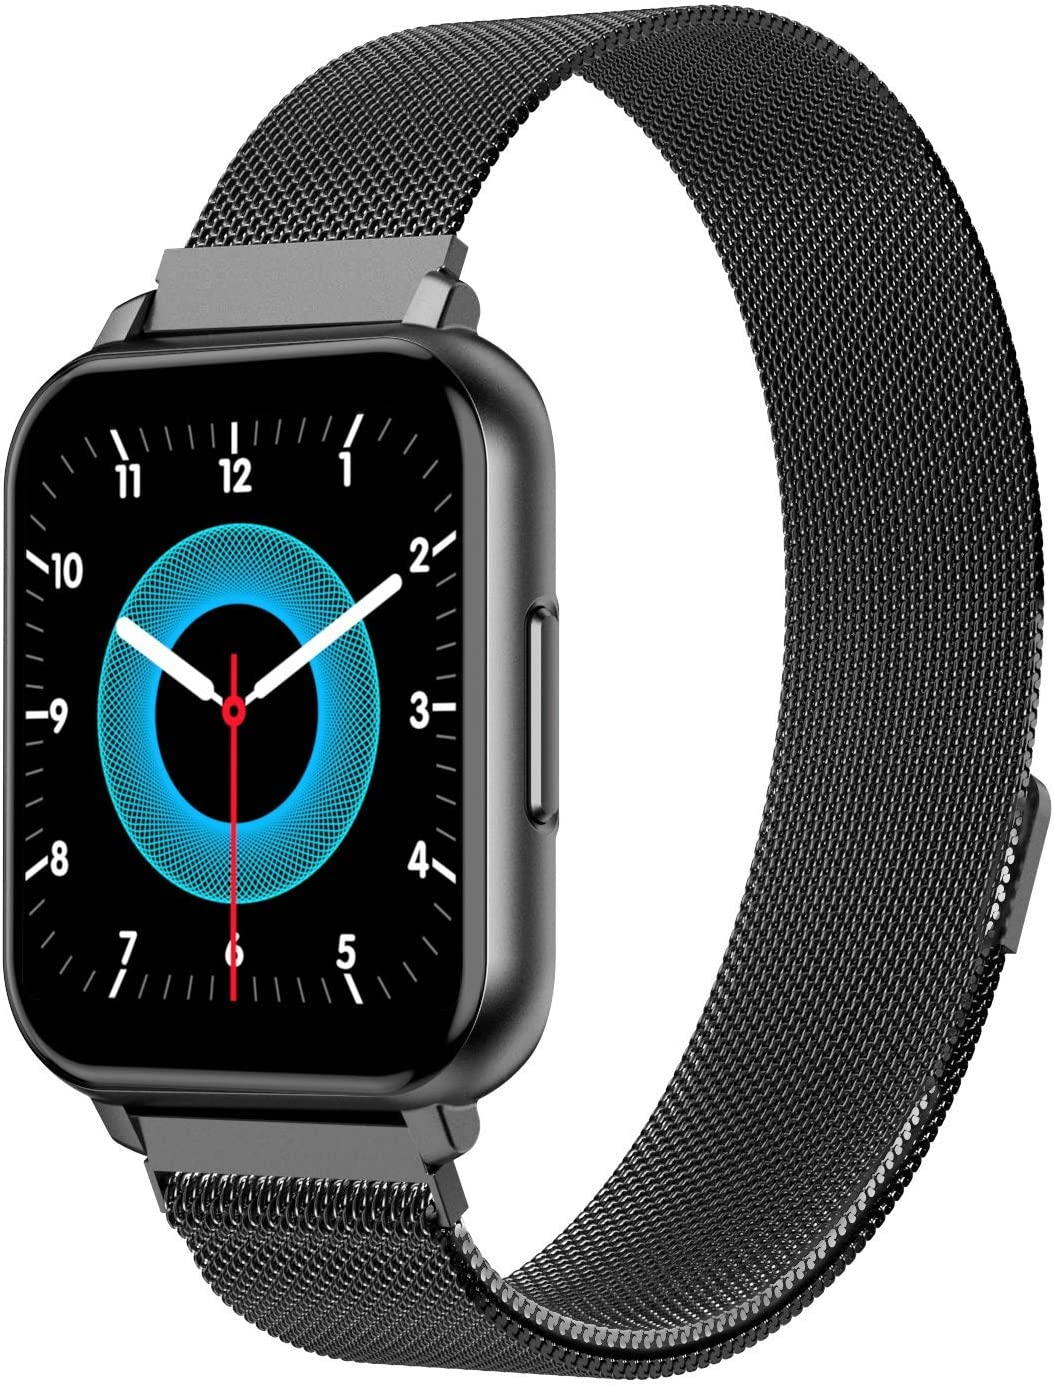 G.Home Smart Watch,Fitness Tracker with Blood Pressure Heart Rate Sleep Monitor,Pedometer Watch for Men and Women,IP67 Waterproof Smartwatch(Black Aluminum Case with 2 Bands)